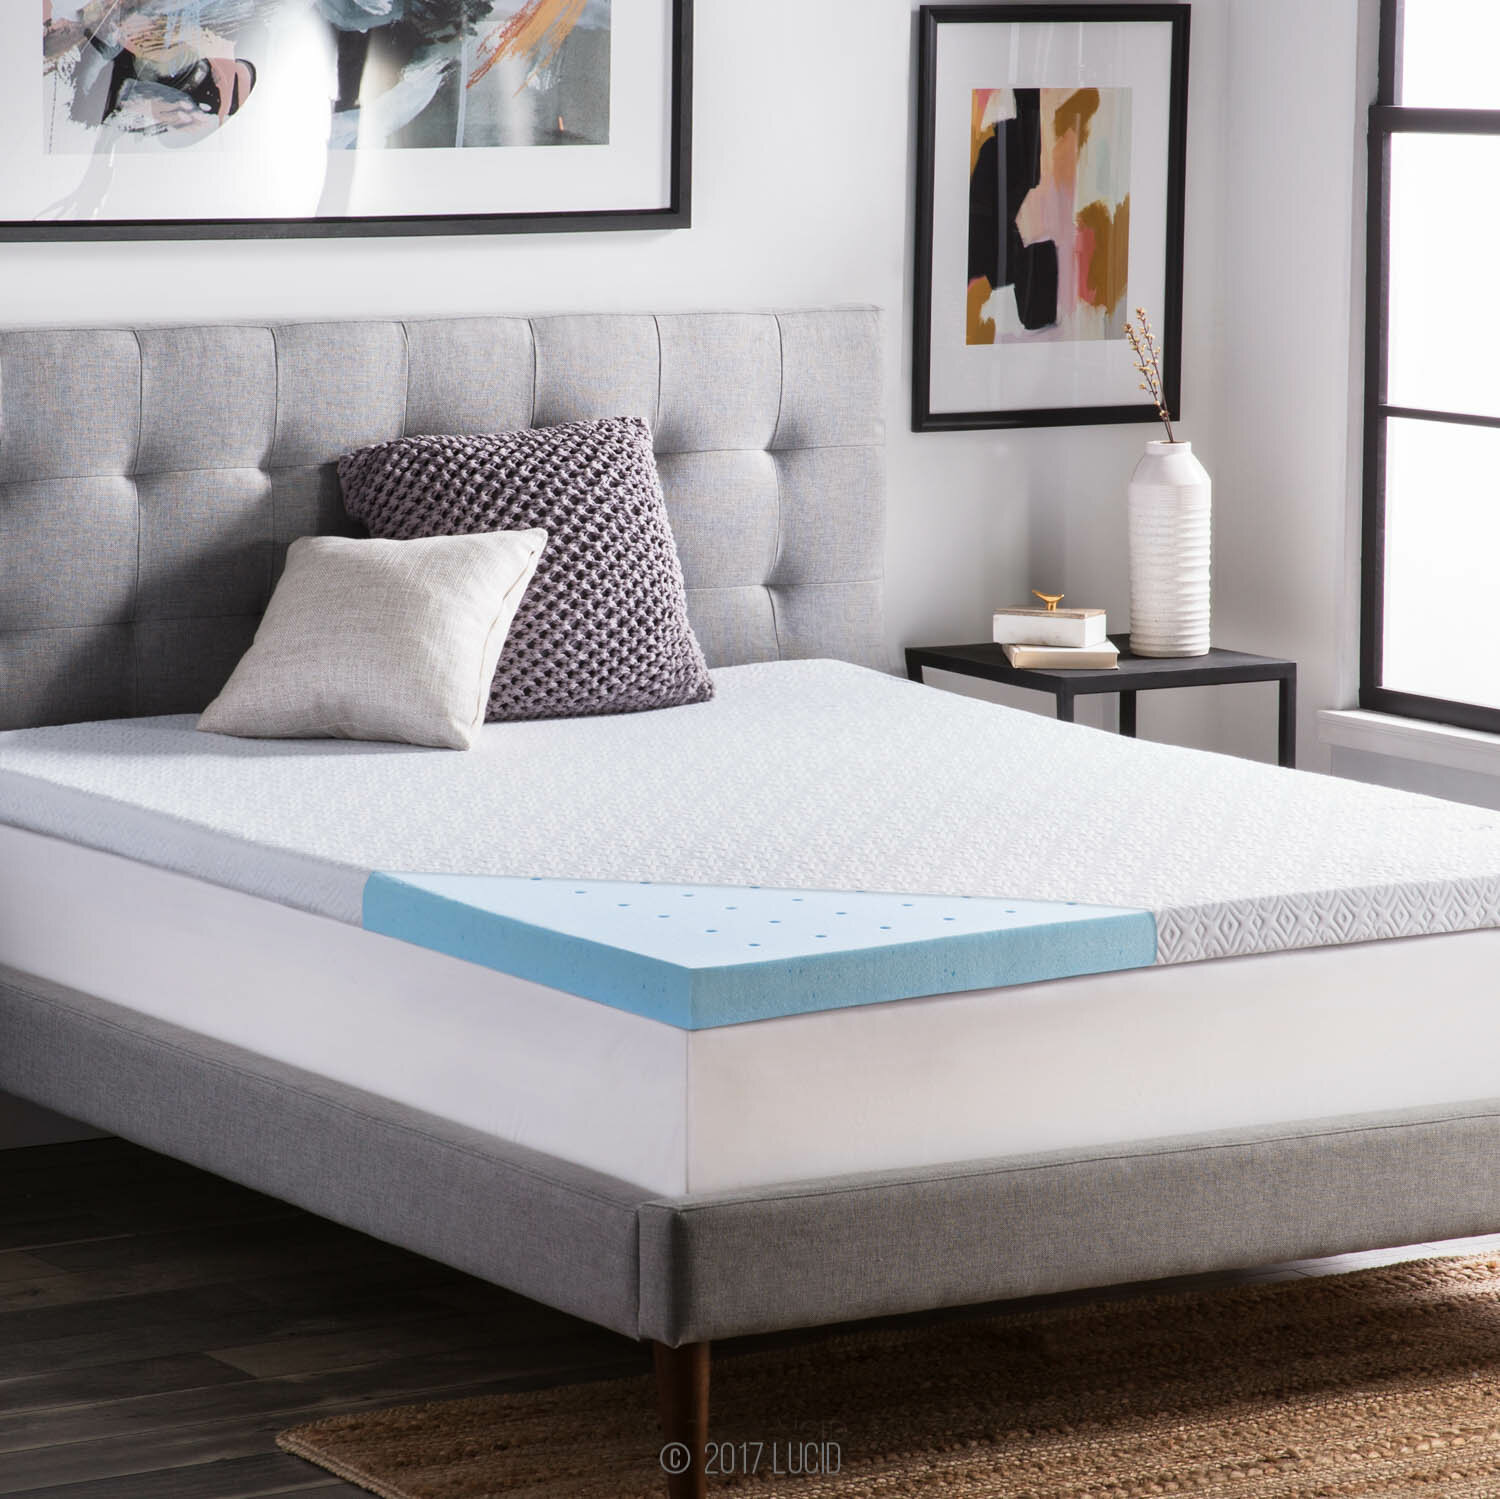 mattress full p wonderful pedic foam in memory top extra pillow toppers of twin does causing terrifying tempur unbelievable size with as topper feel good our long astonishing cheap back gel a splendid